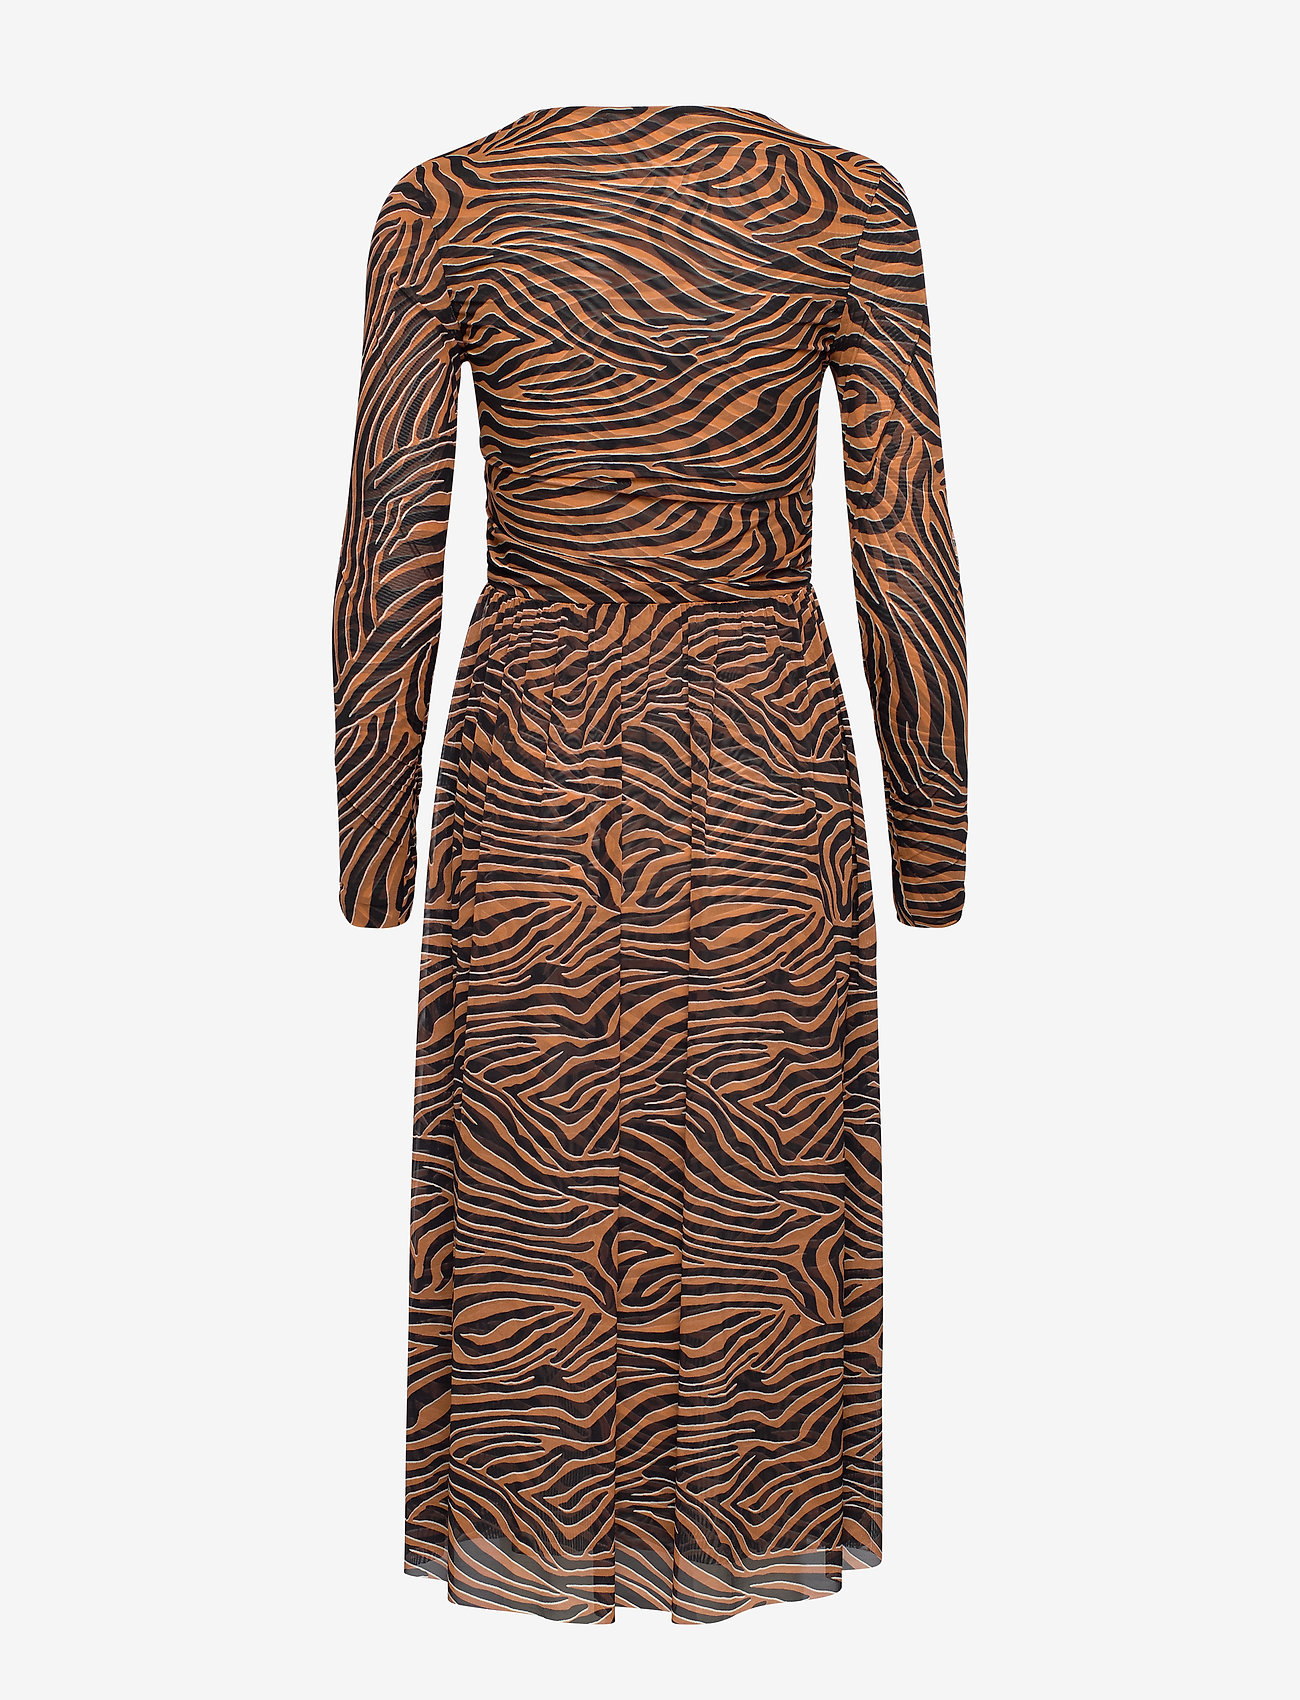 Vivi Dress Aop 8211 (Argan Moonscape) (600 kr) - Samsøe Samsøe 9Gb6rHm4